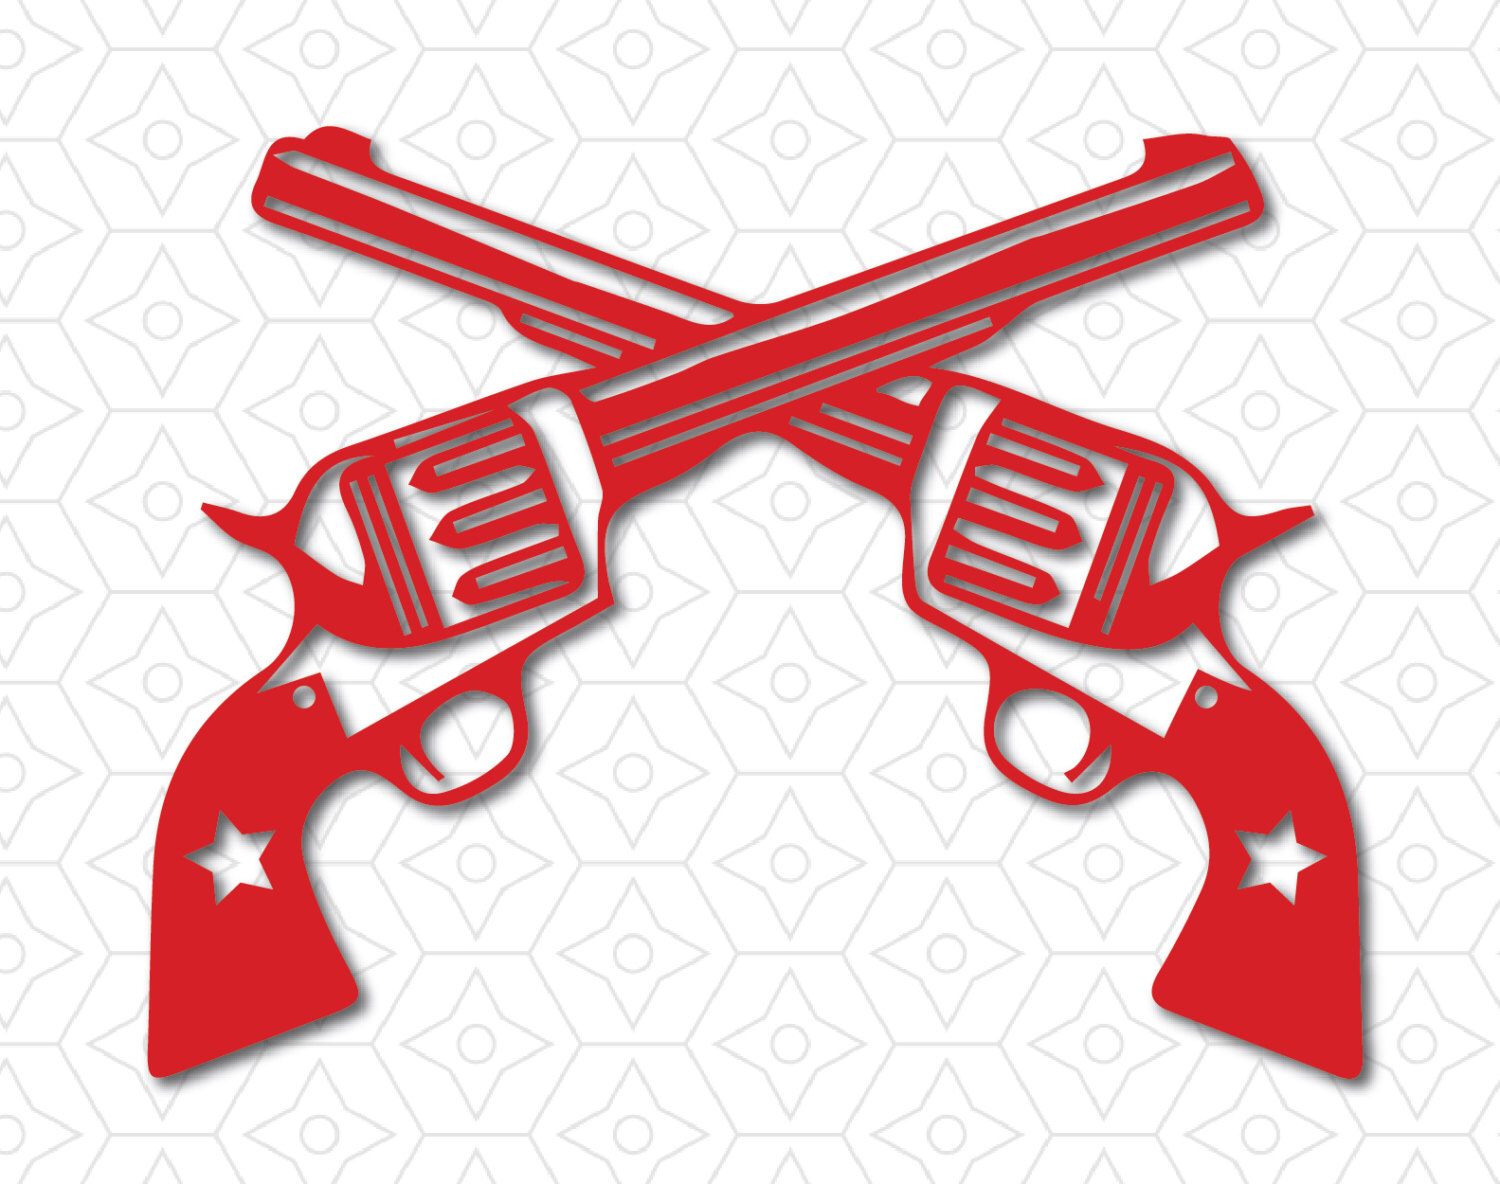 Western Revolver Guns Crossed Decal SVG DXF And AI Vector Files